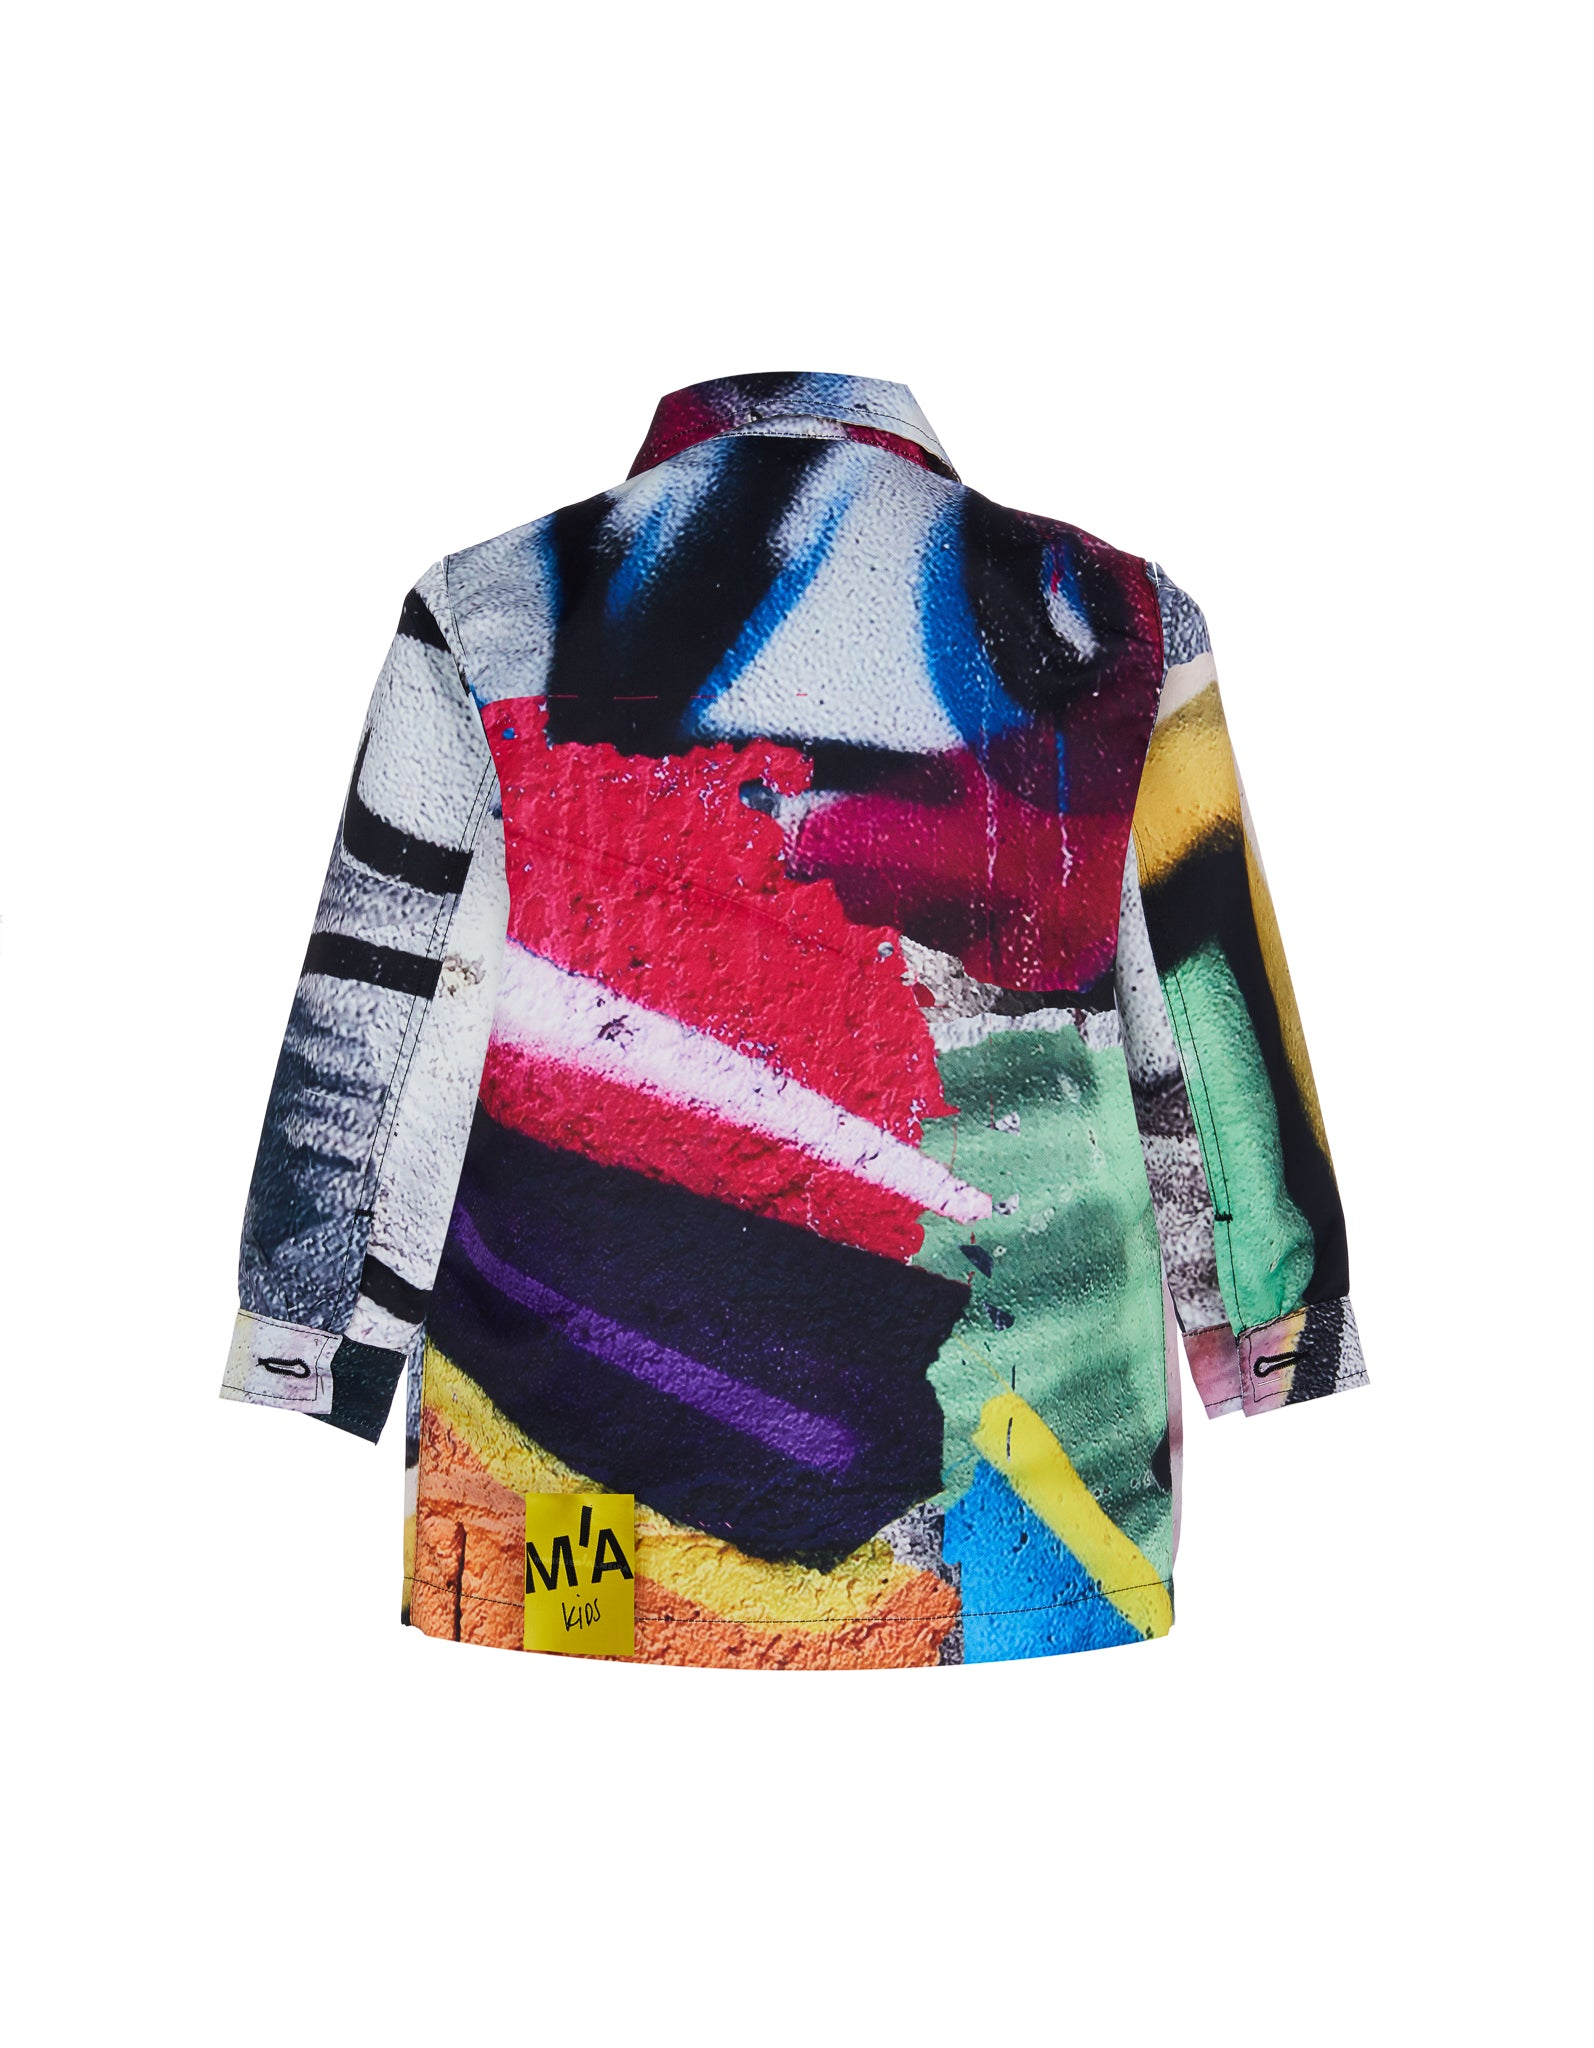 WORKWEAR JACKET IN BRIGHT PRINT